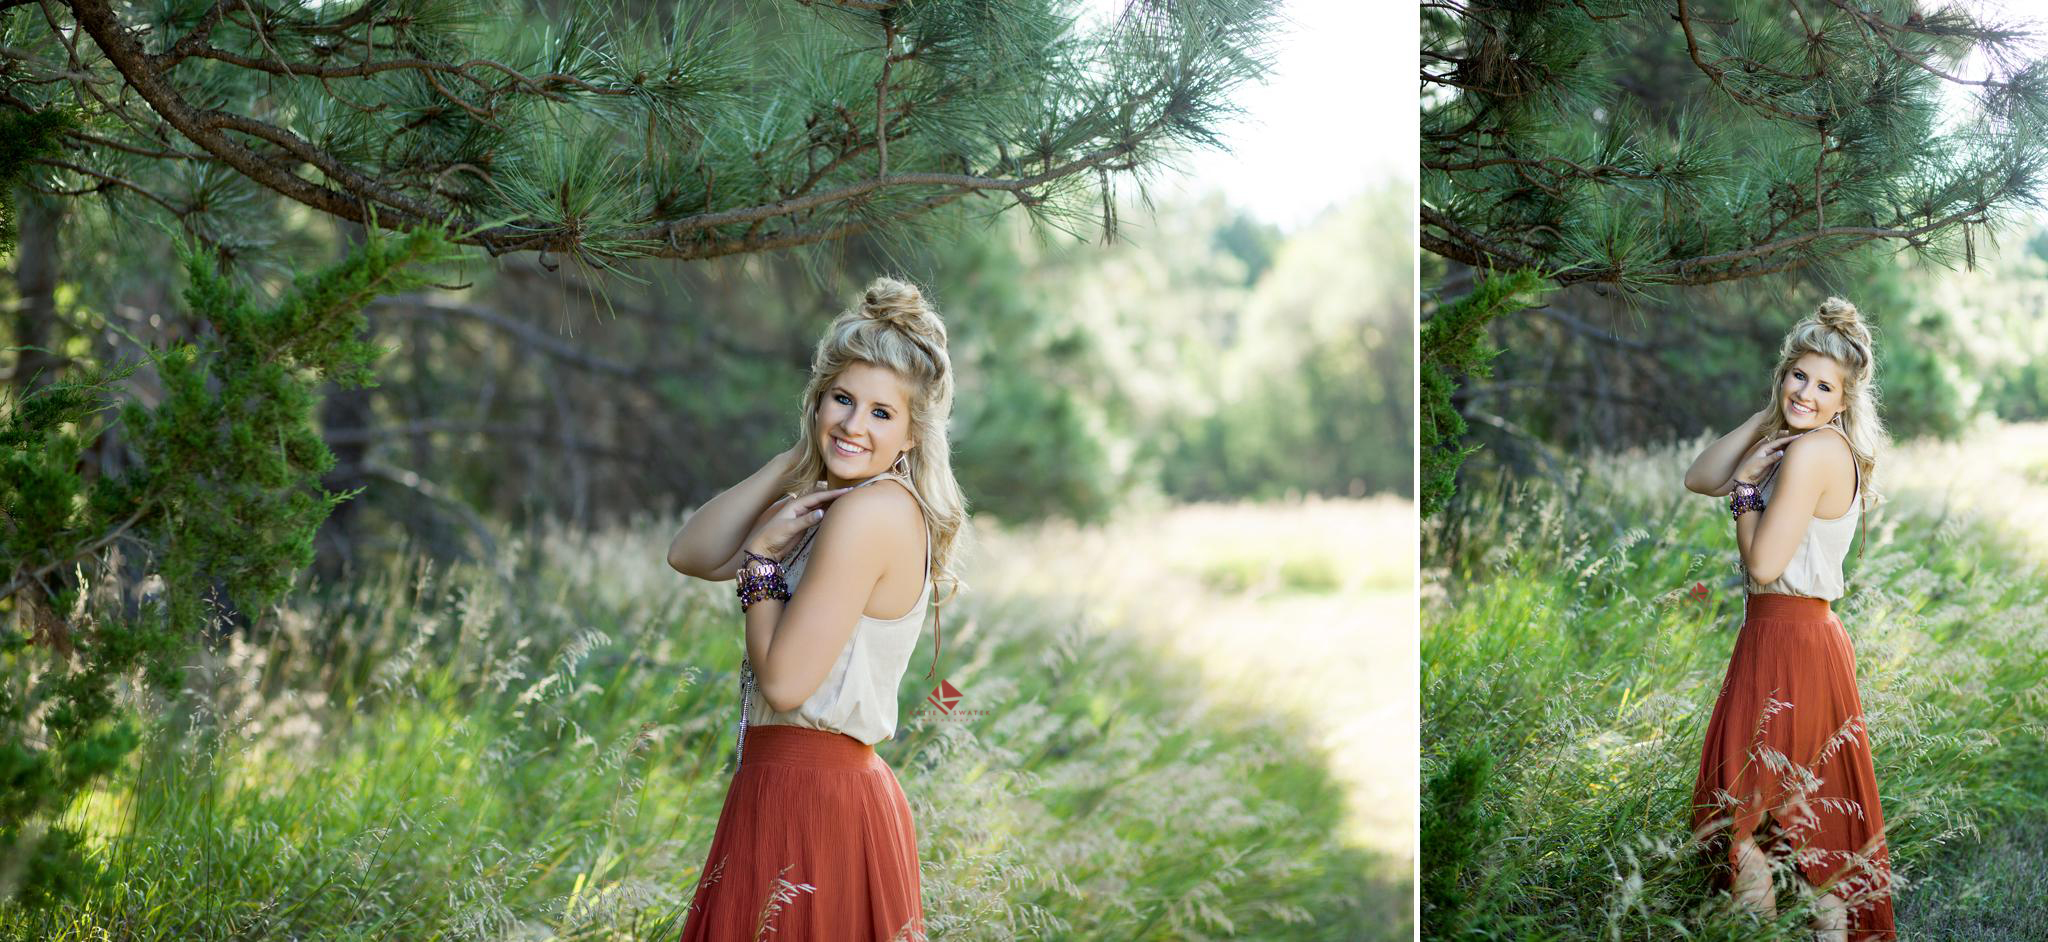 blonde senior girl in an ivory top and a rust colored skirt standing near evergreen trees